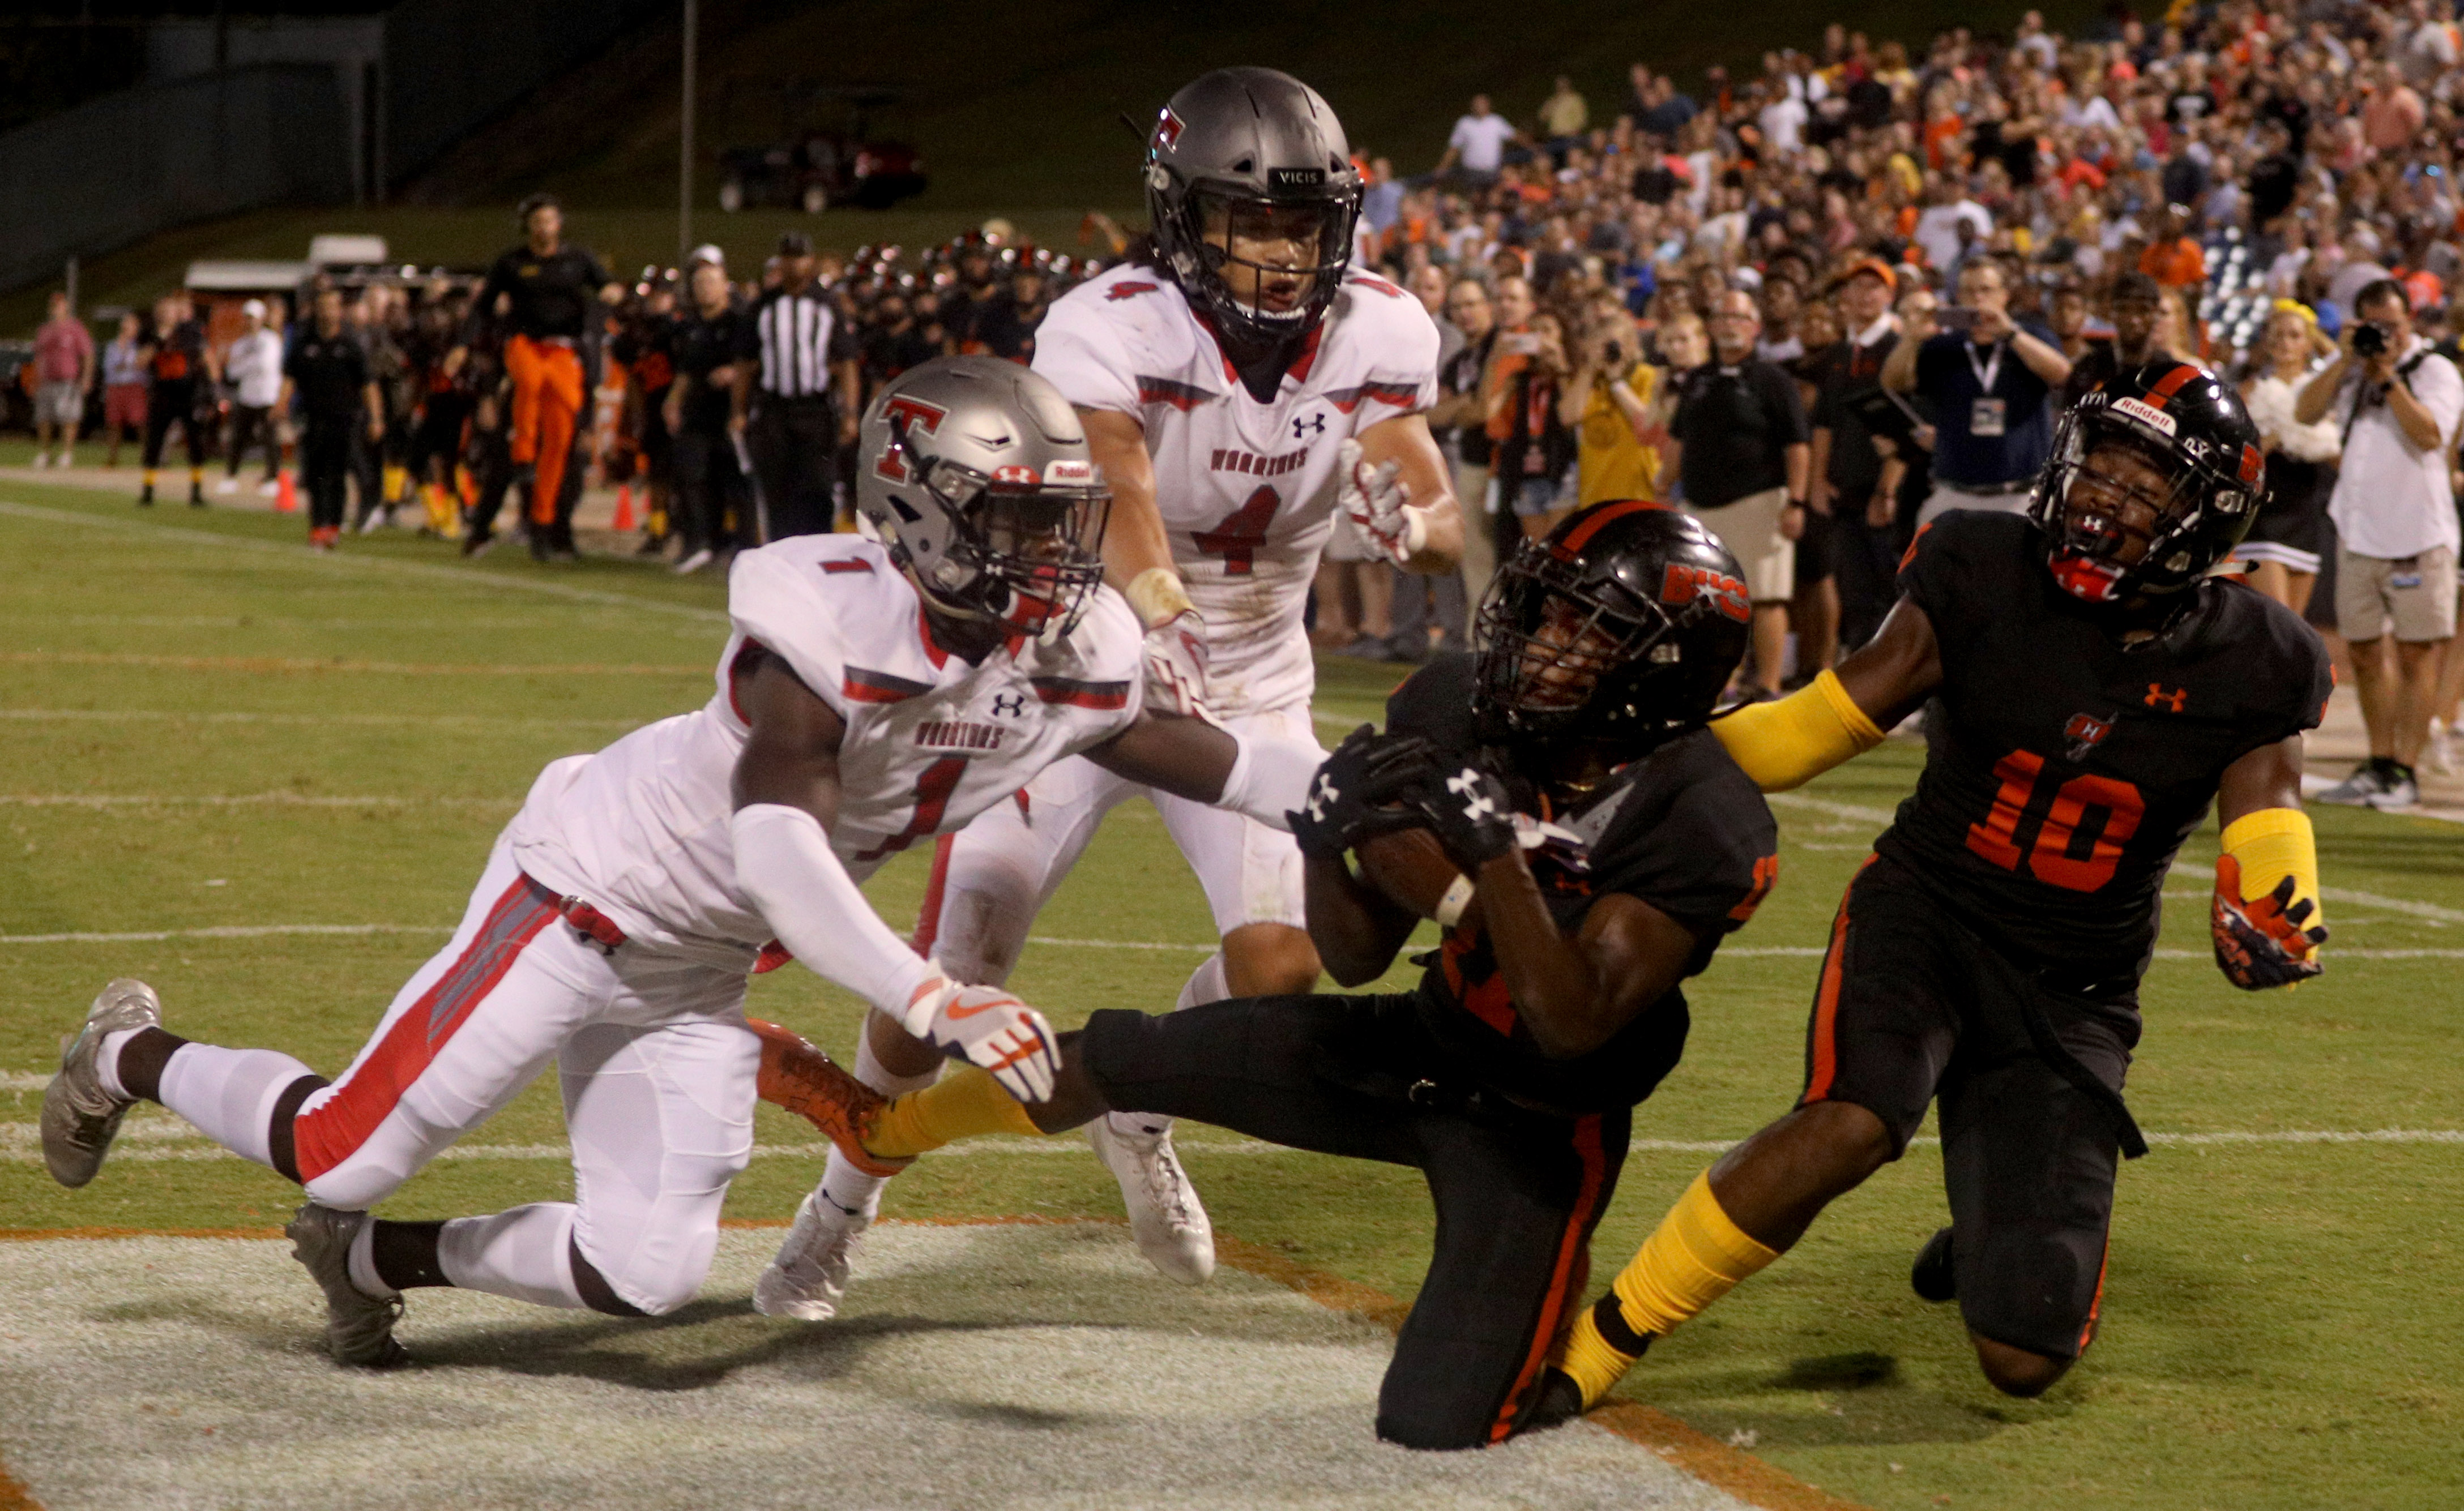 Hoover's Xavier Long catches a touchdown pass as Thompson's Sam Reynolds, left, and Jalen Bustamante defend during a high school football game at the Hoover Met in Hoover, Ala., Friday, Sept. 7, 2018. (Dennis Victory/preps@al.com) Dennis Victory